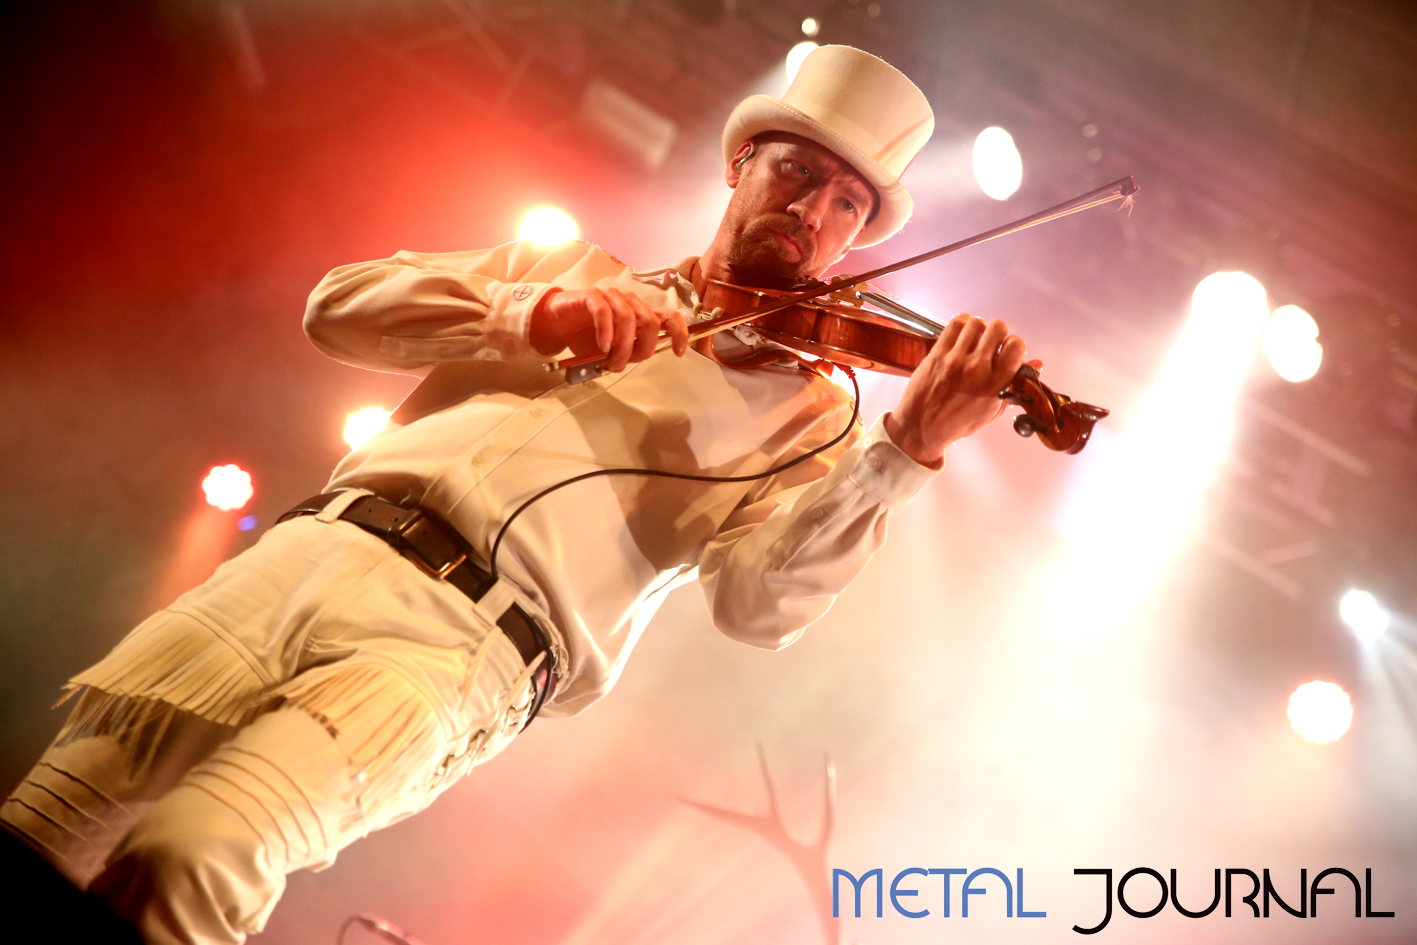 korpiklaani metal journal bilbao 2019 pic 8